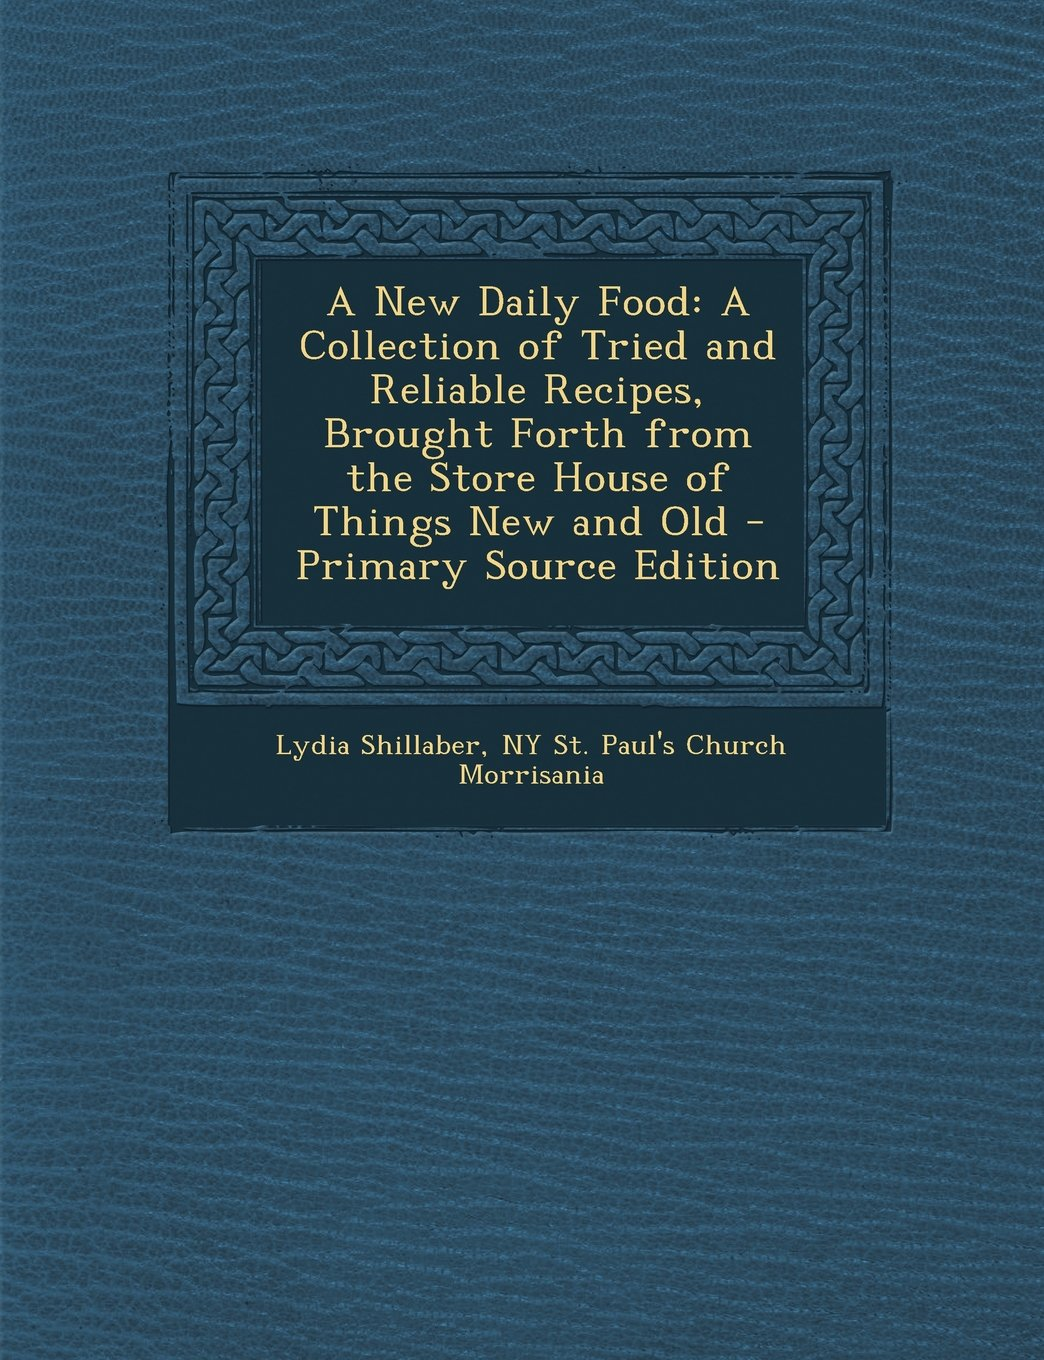 A New Daily Food: A Collection of Tried and Reliable Recipes, Brought Forth from the Store House of Things New and Old - Primary Source Edition pdf